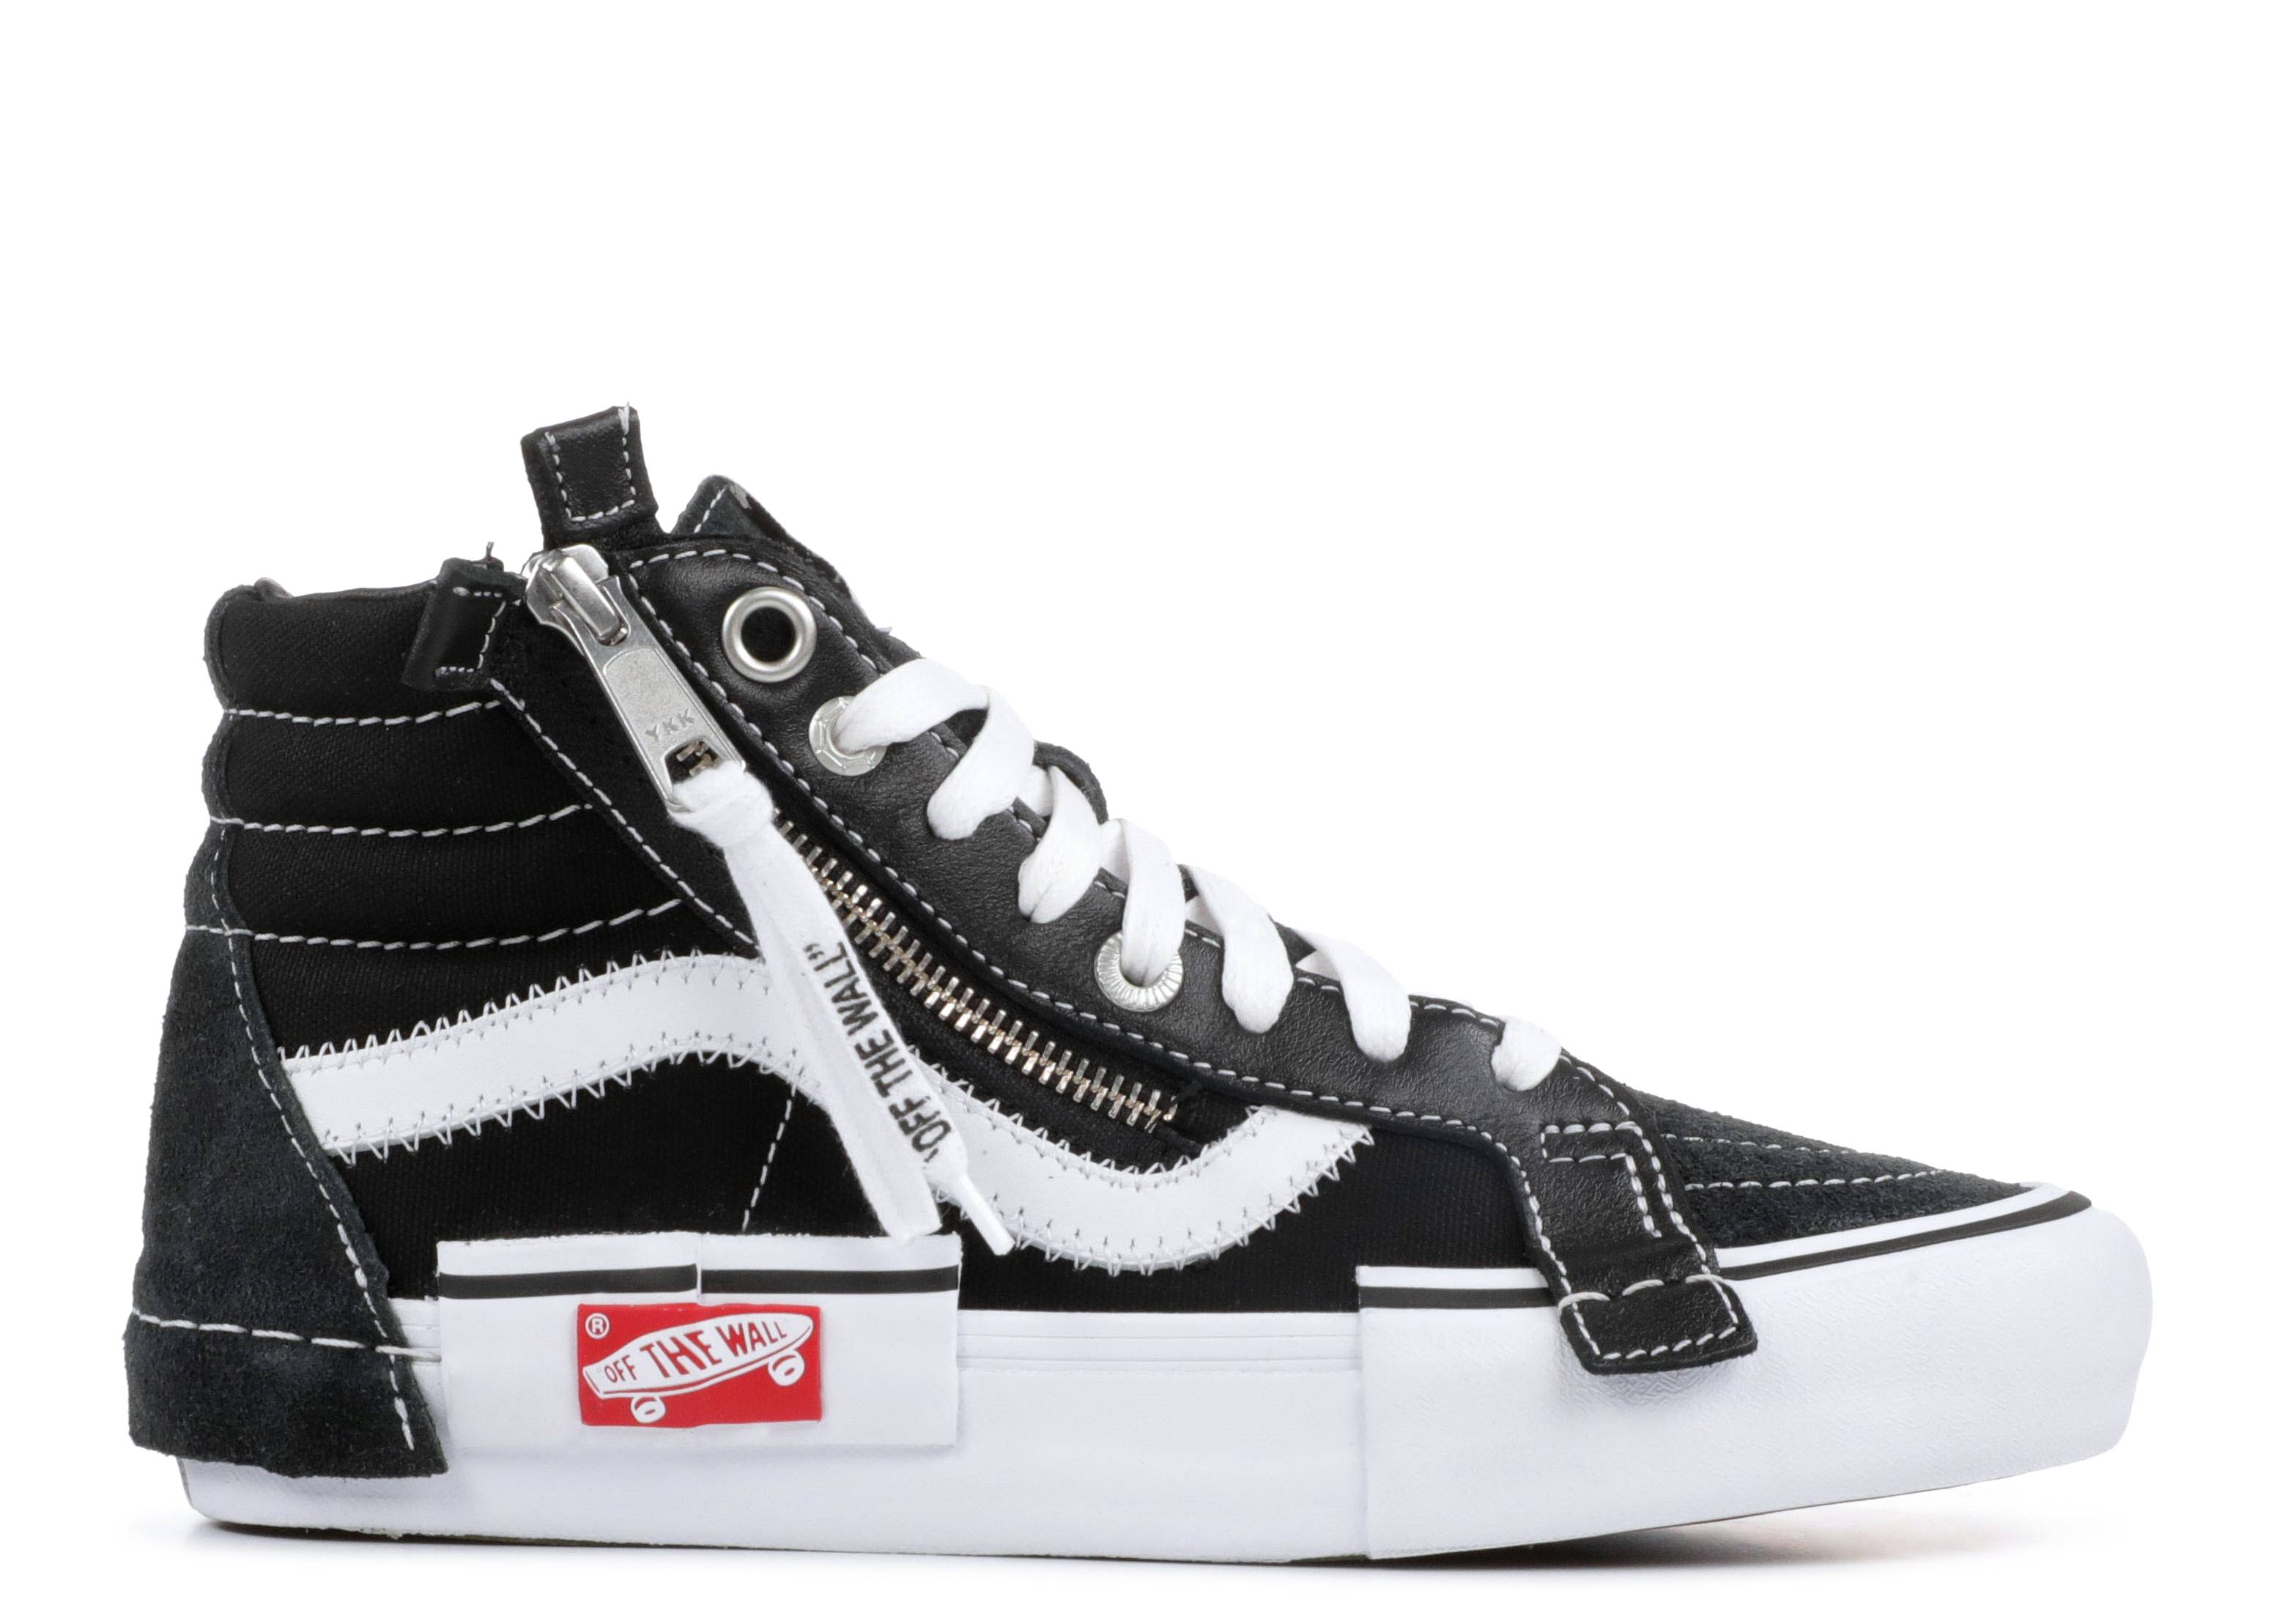 Sk8 hi Cap Lx Bla  inside Out    Vans   vn0a3tkm6bt   black white     vans  sk8 hi cap lx bla  inside out